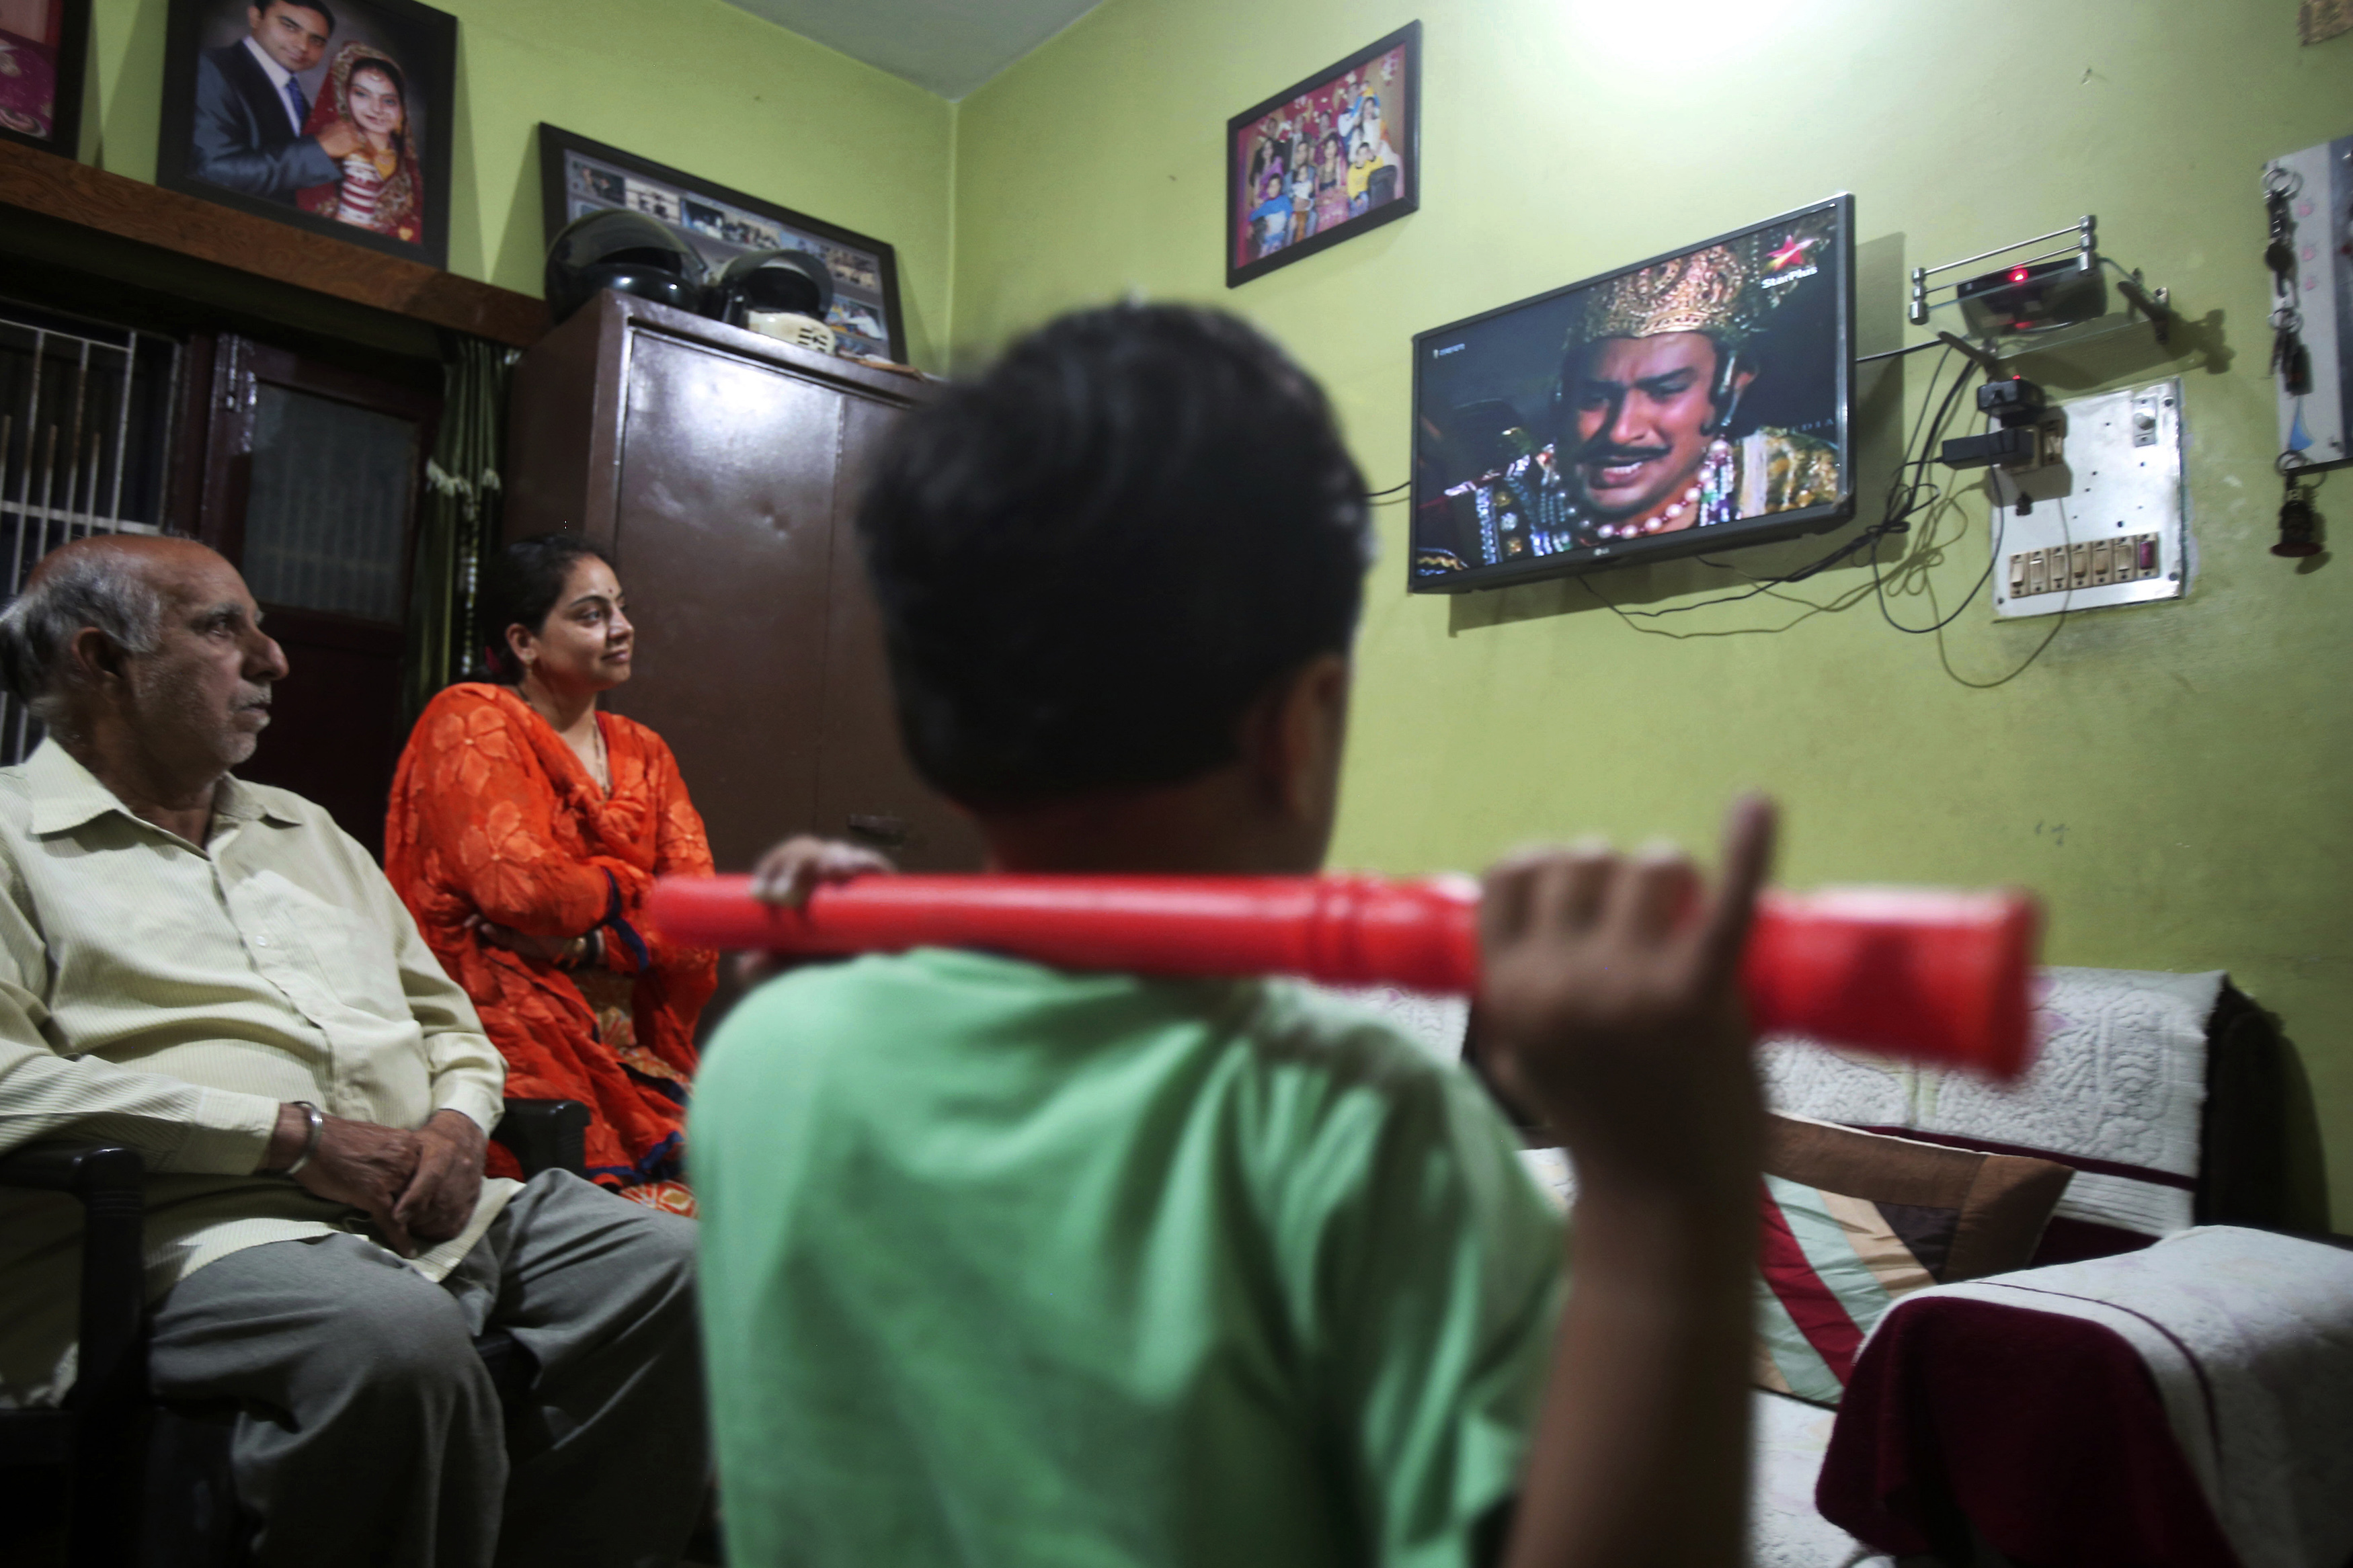 An Indian family watches epic television series u201cRamayanu201d at their home in Jammu, India May 18, 2020. The countryu2019s public broadcaster last month revived the wildly popular series from the 80s and brought back to life for a captive audience under lockdown. Staying home under a lockdown as they wait for the worst of the coronavirus pandemic to pass, millions of Indians are turning to their Gods. Not in their prayer rooms, but on their televisions. Photo: AP